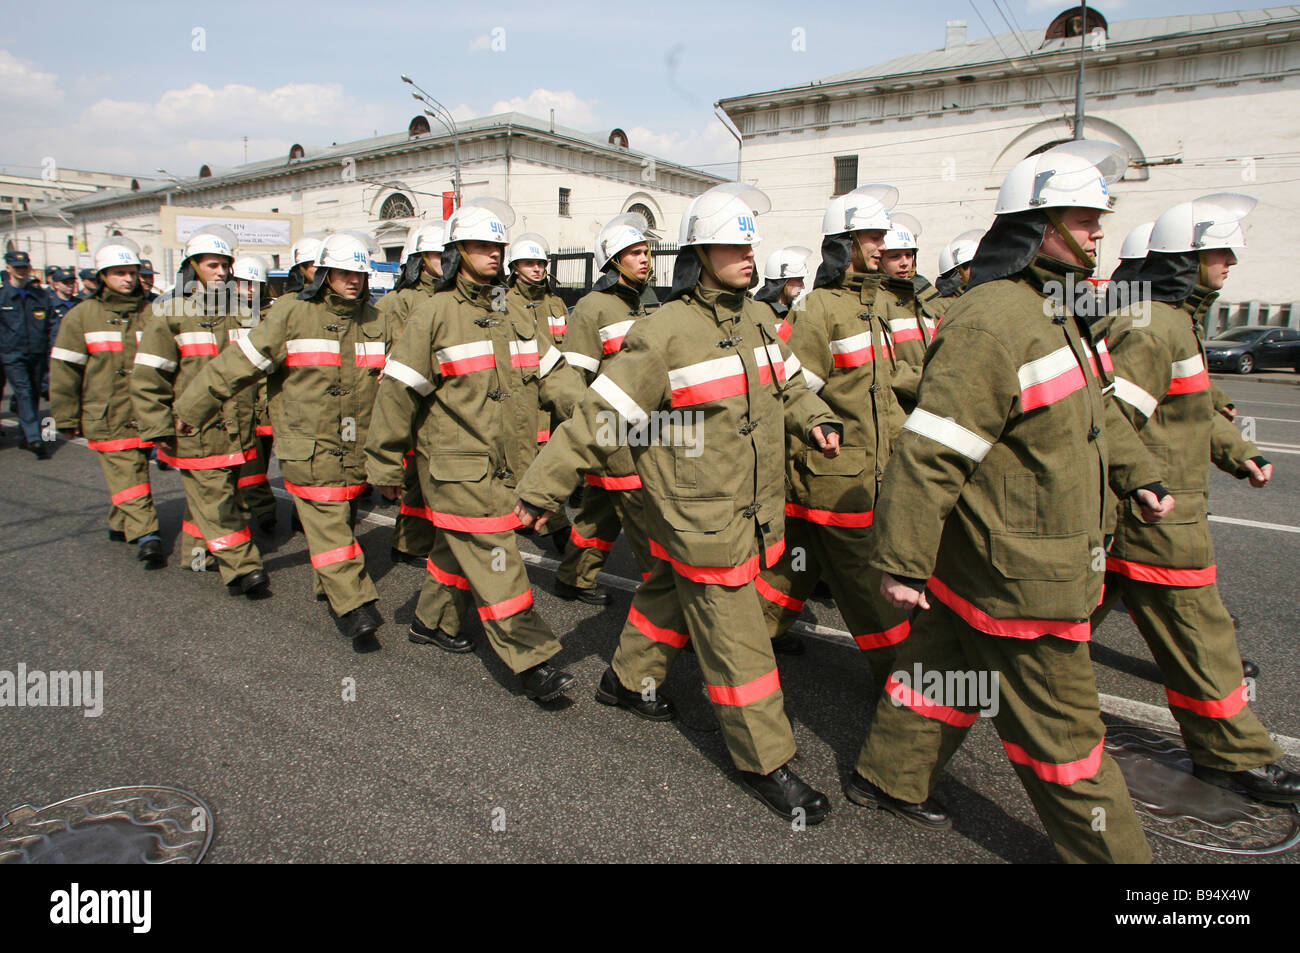 Firemen parade in Moscow s center on Fire Service Day - Stock Image